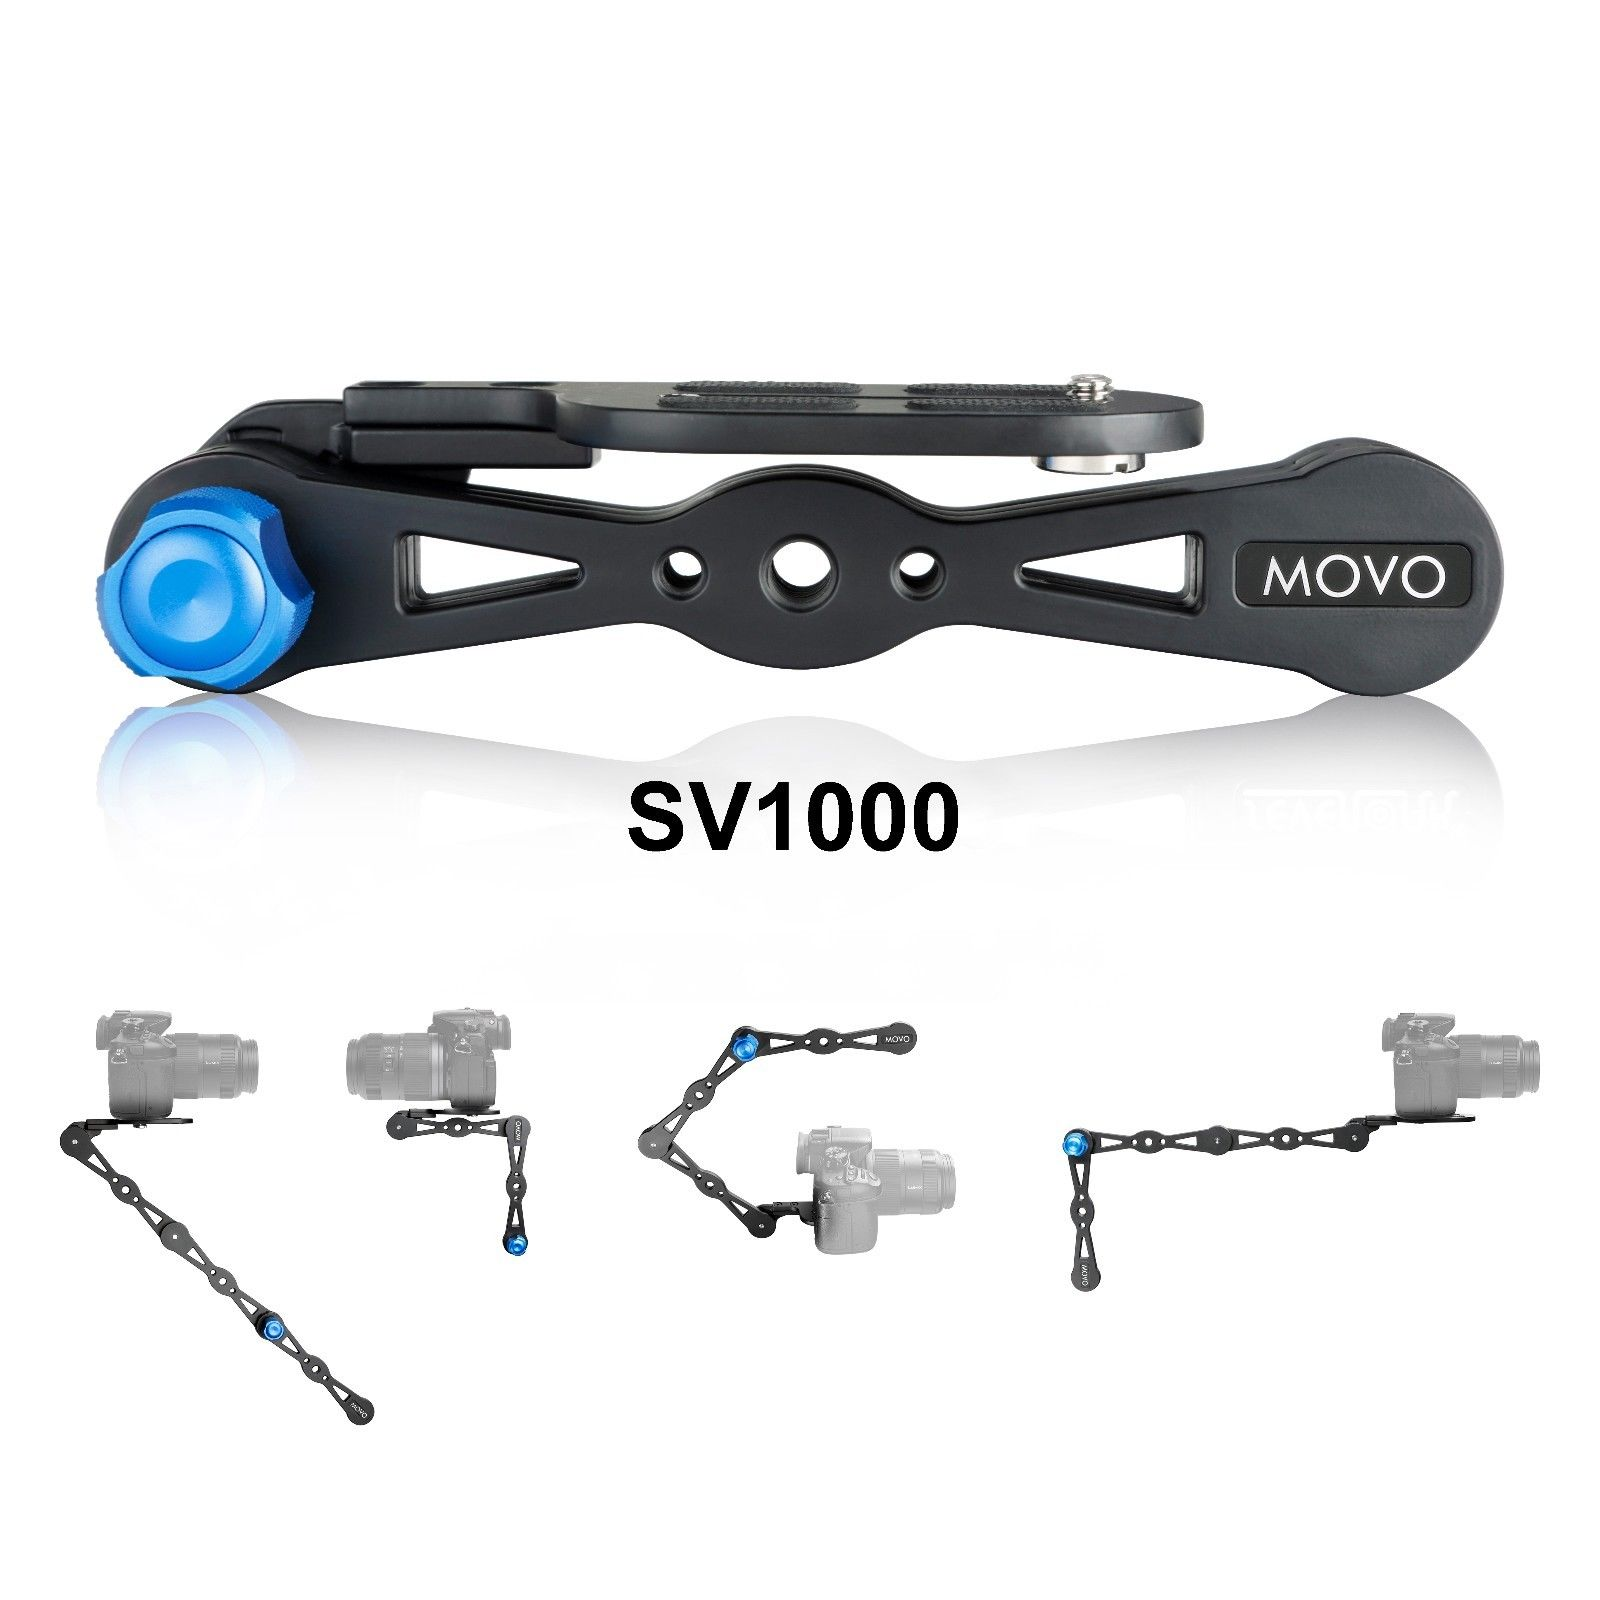 Movo Photo SV1000 Aluminum Combination Shoulder Rig / Selfie Stick / Handheld Stabilizer / Video Grip - For all Cameras up to 9 lbs/4kg